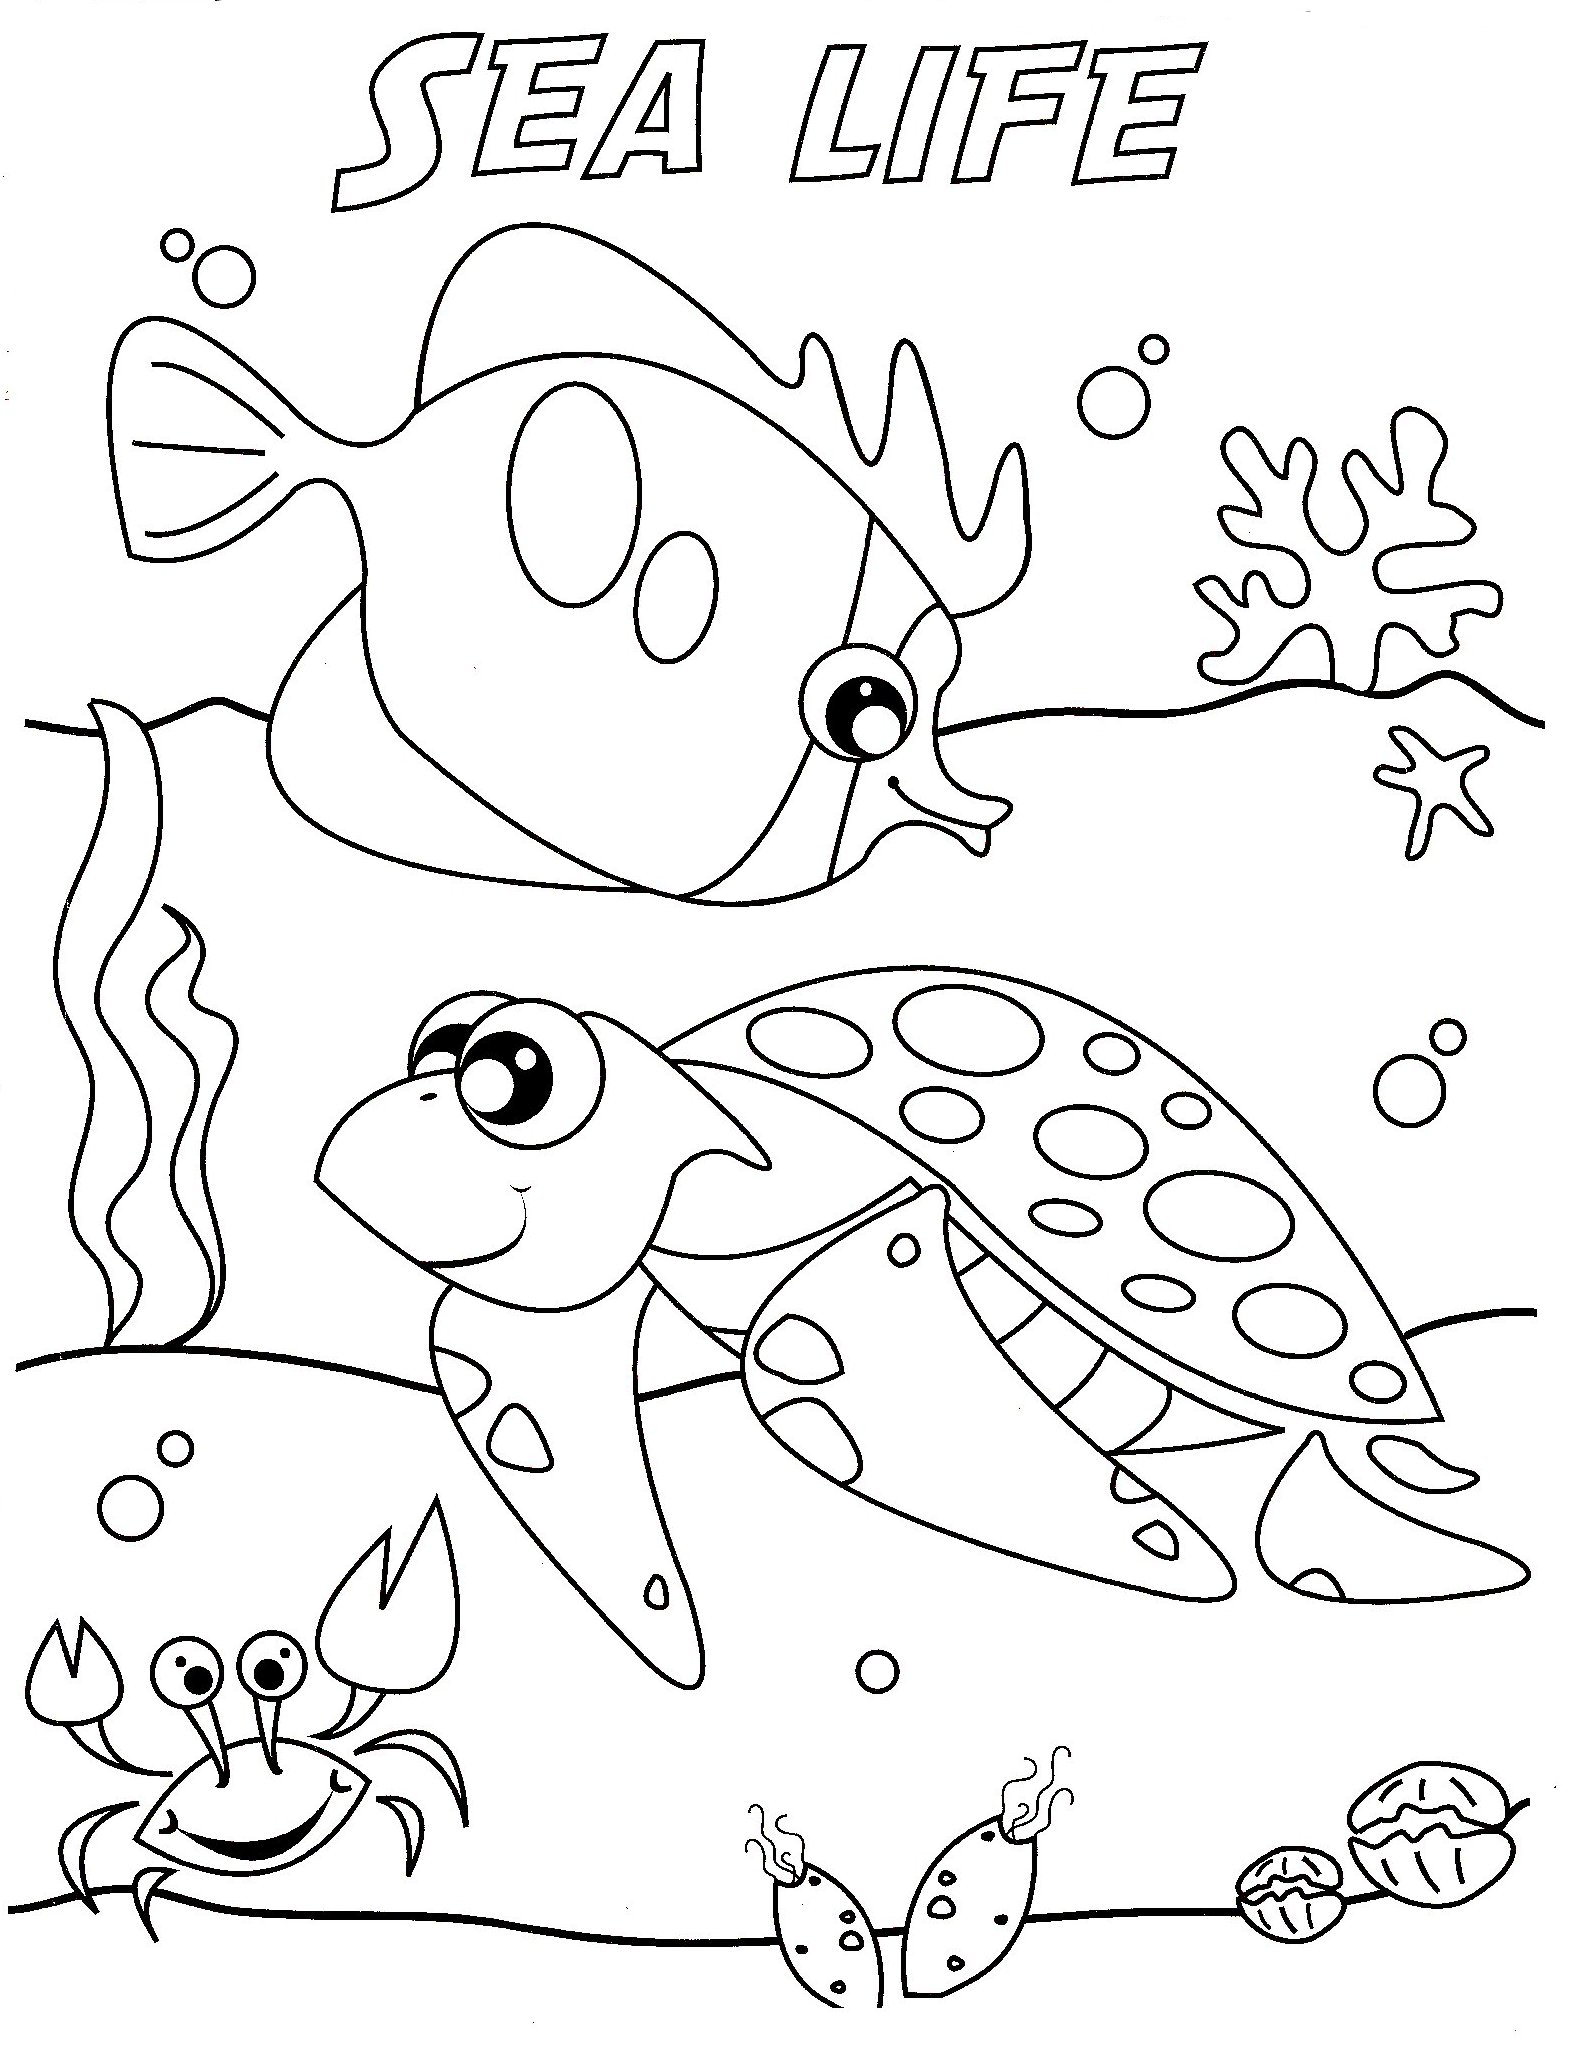 Best Website For Free Coloring Pages : Under the sea coloring pages to download and print for free